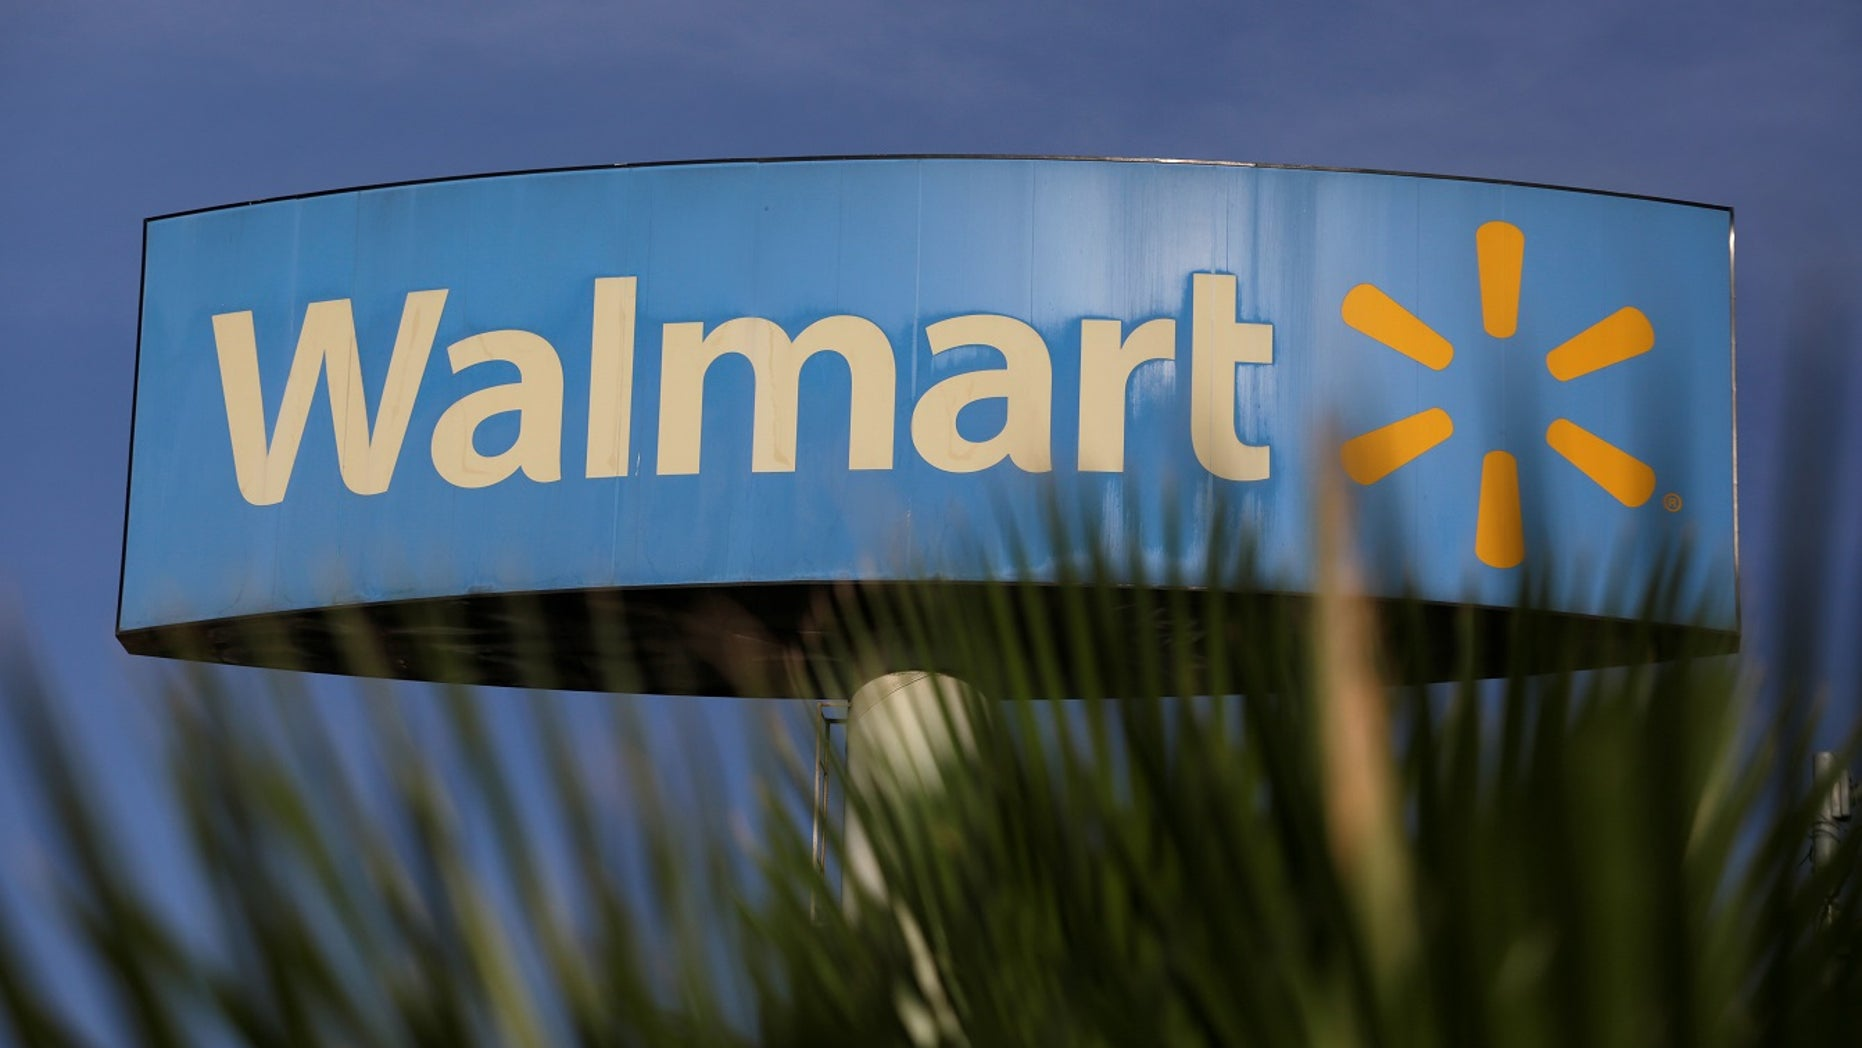 Walmart apologized for a sign over a gun display in an Indiana store.